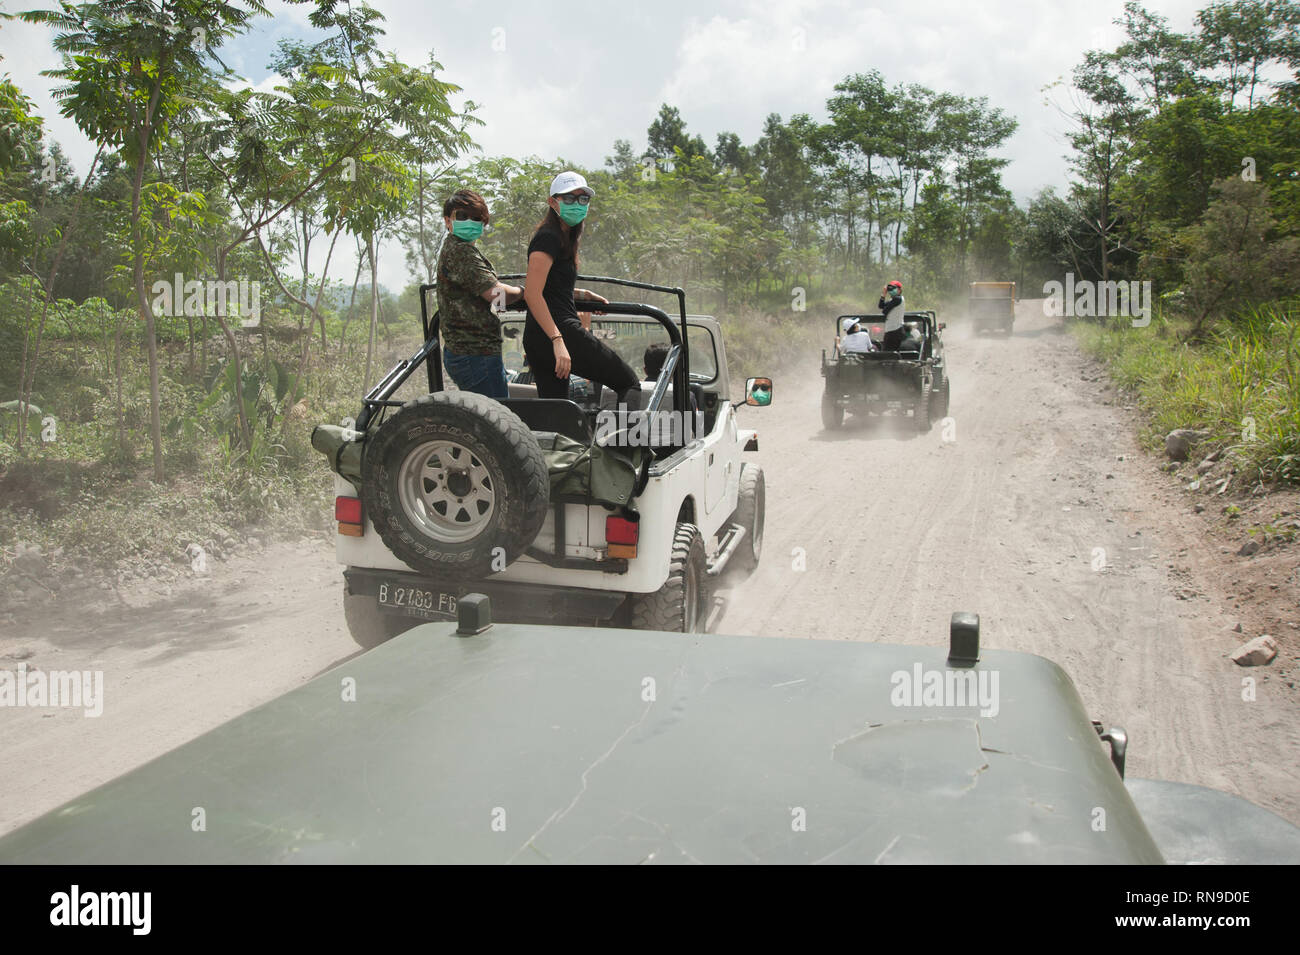 Yogyakarta  Indonesia - Aug 1, 2016 : A group of tourist on four while drive vehicle exploring Mount Merapi trails to witness volcano destruction. - Stock Image